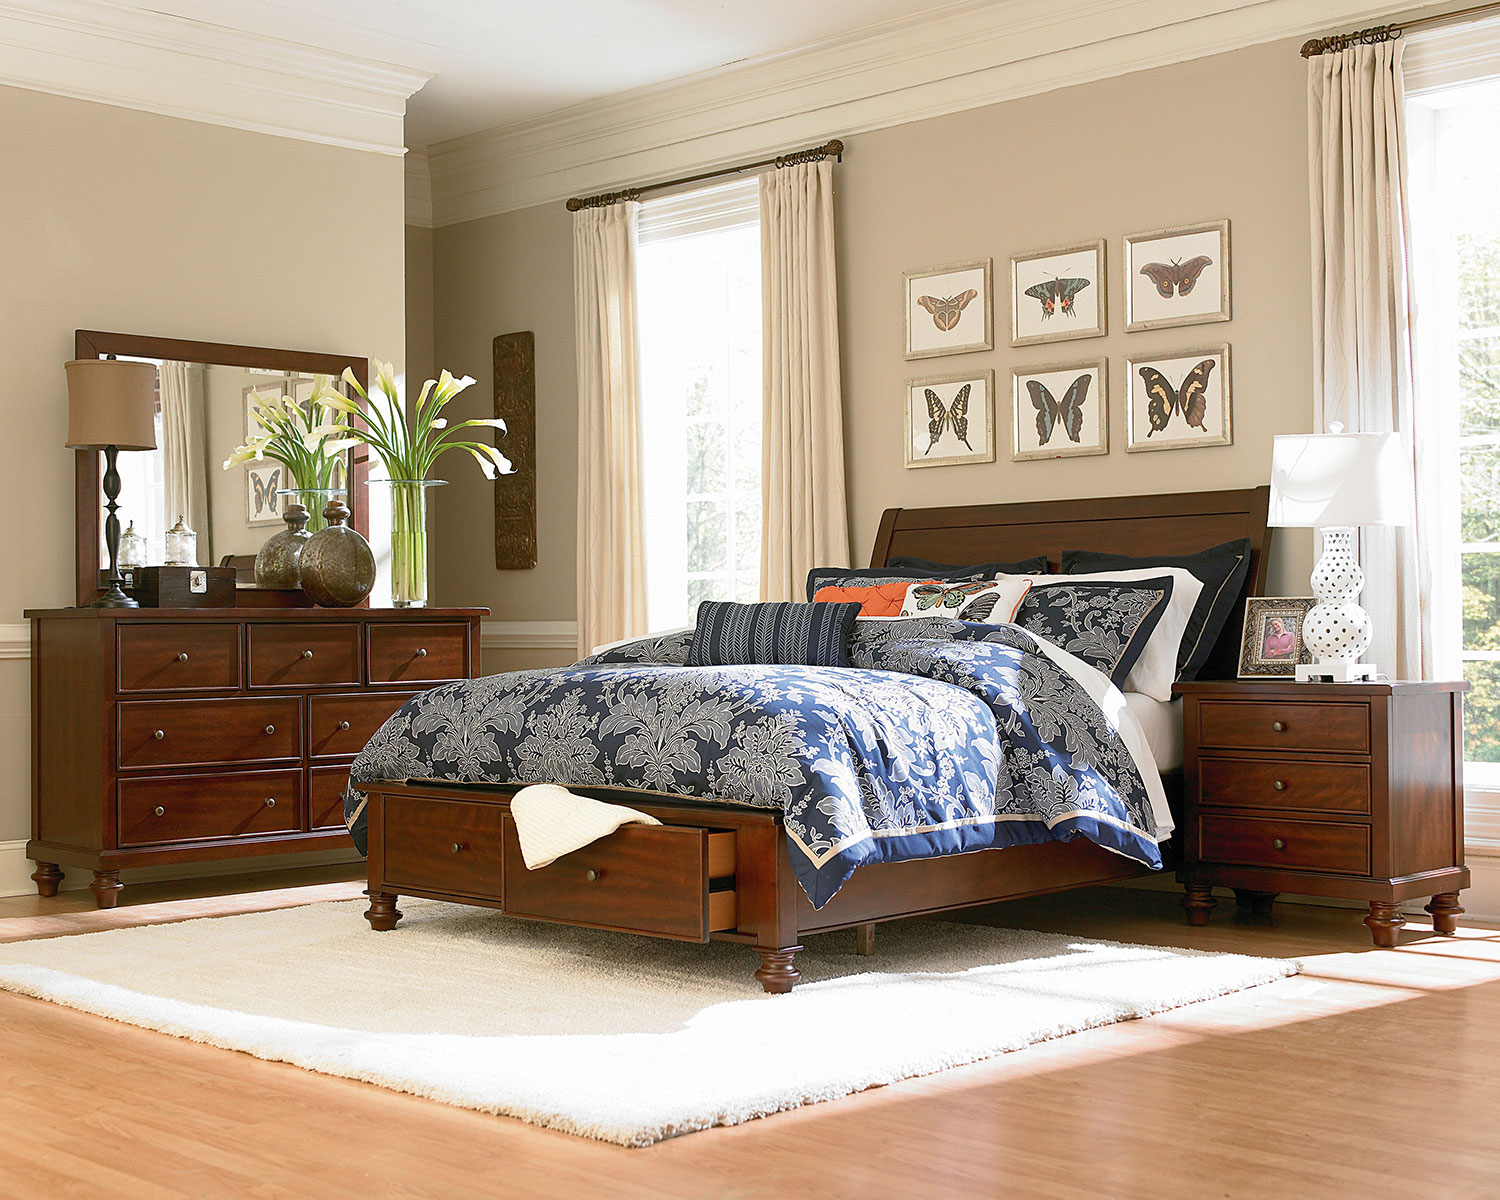 Bedroom Packages Levin Furniture